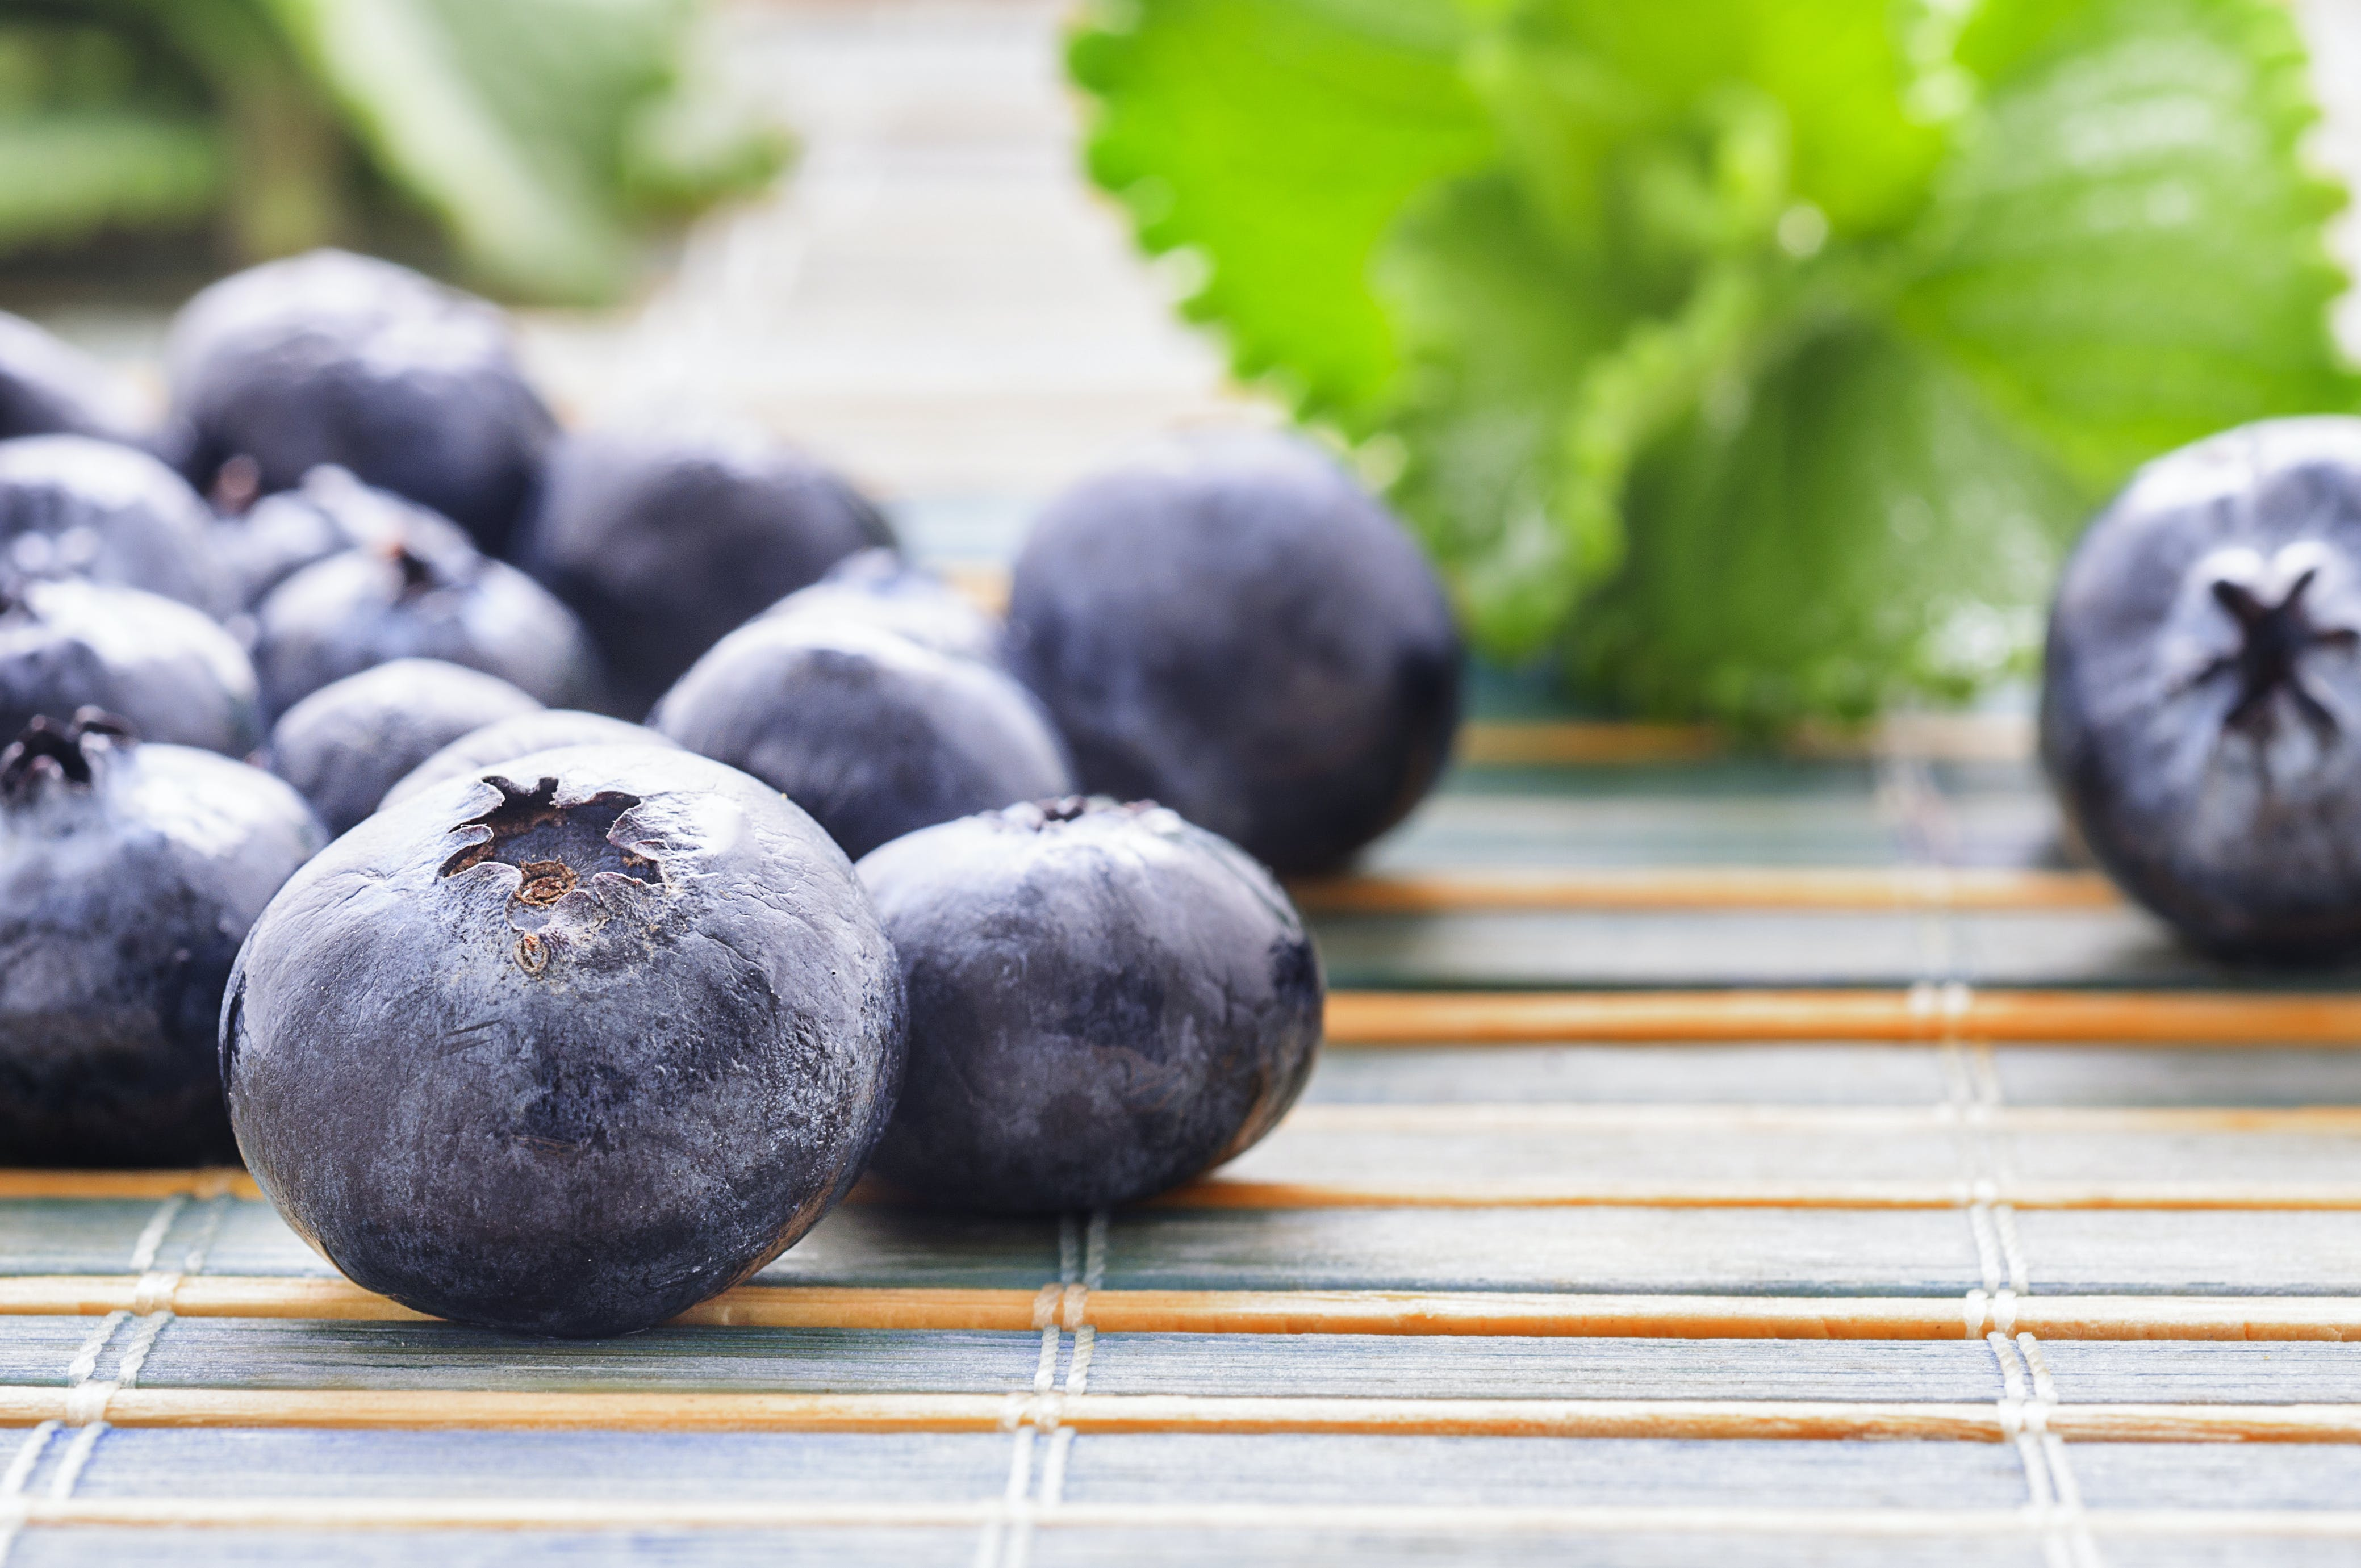 Gratis stockfoto met blauwe bessen, close-up, eten, fruit